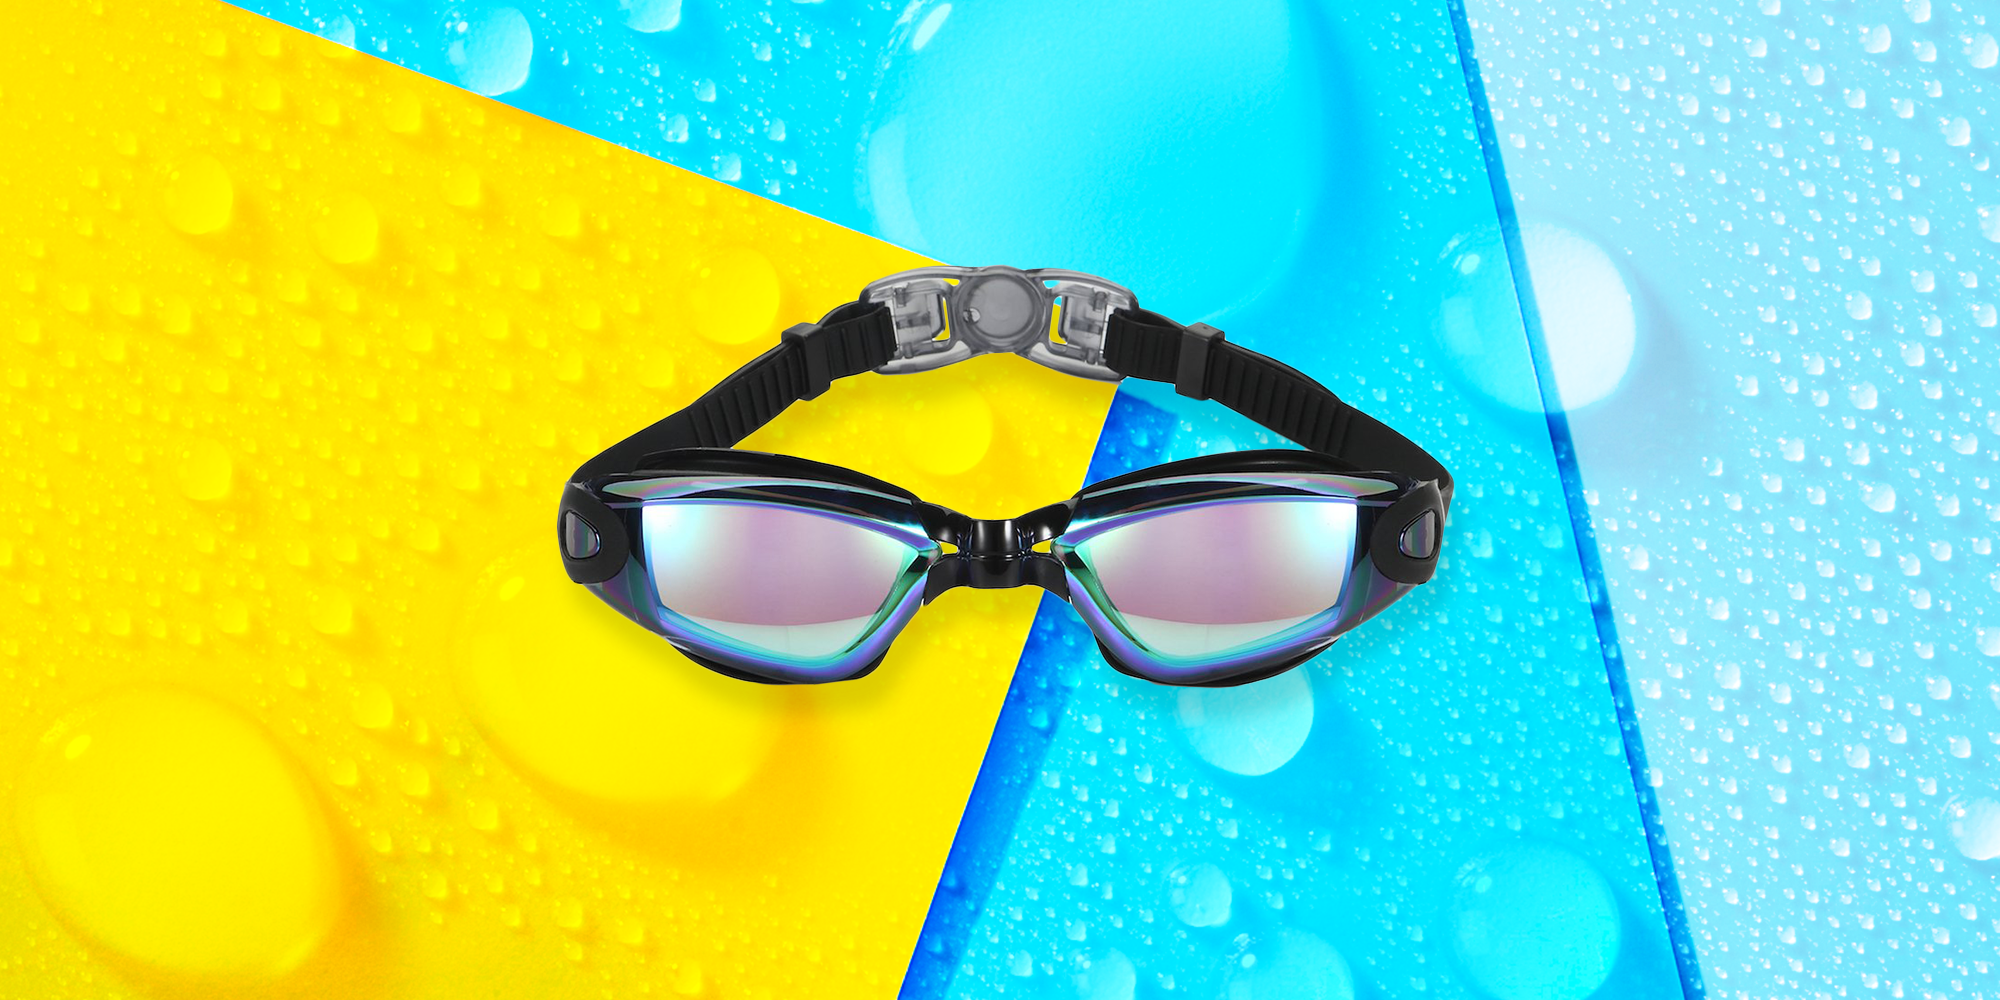 The 20 Best Swimming Goggles, According to Amazon User Reviews